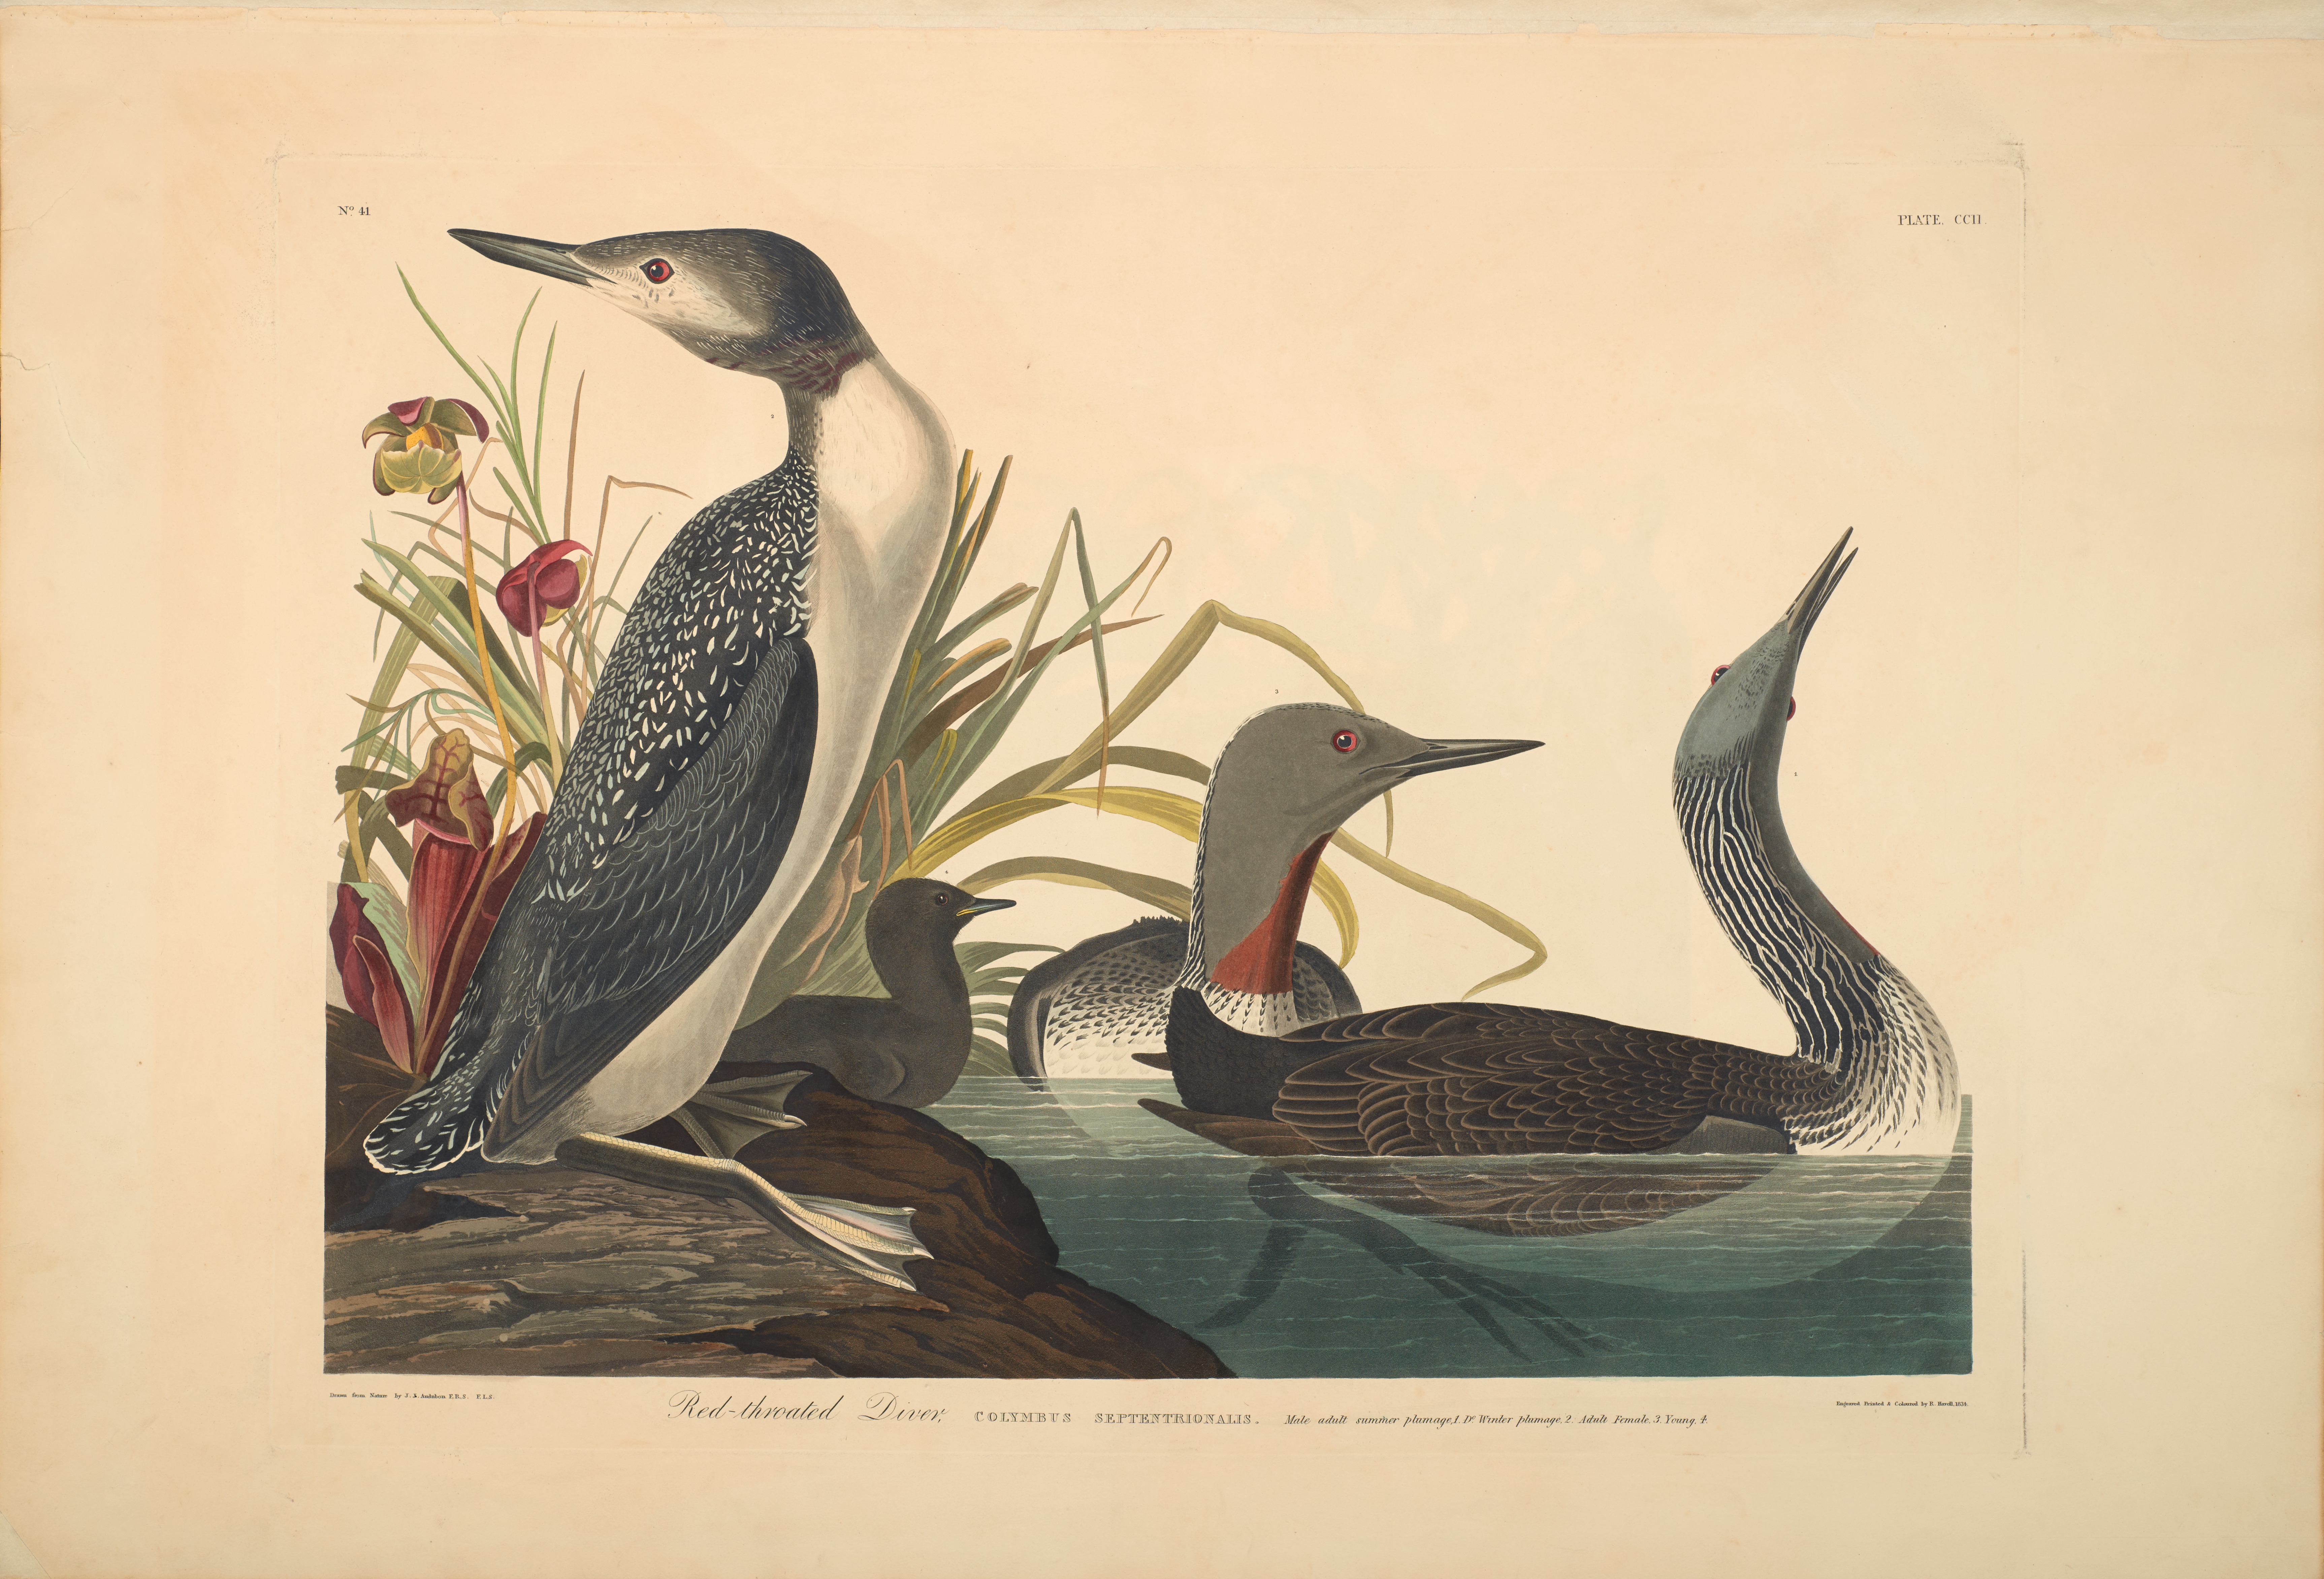 John James Audubon, Red-throated Diver, from The Birds of America, 1827 – 38 , hand - colored aquatint/engraving on paper , 40 x 26 in., North Carolina Museum of Art, Transfer from the North Carolina State Library